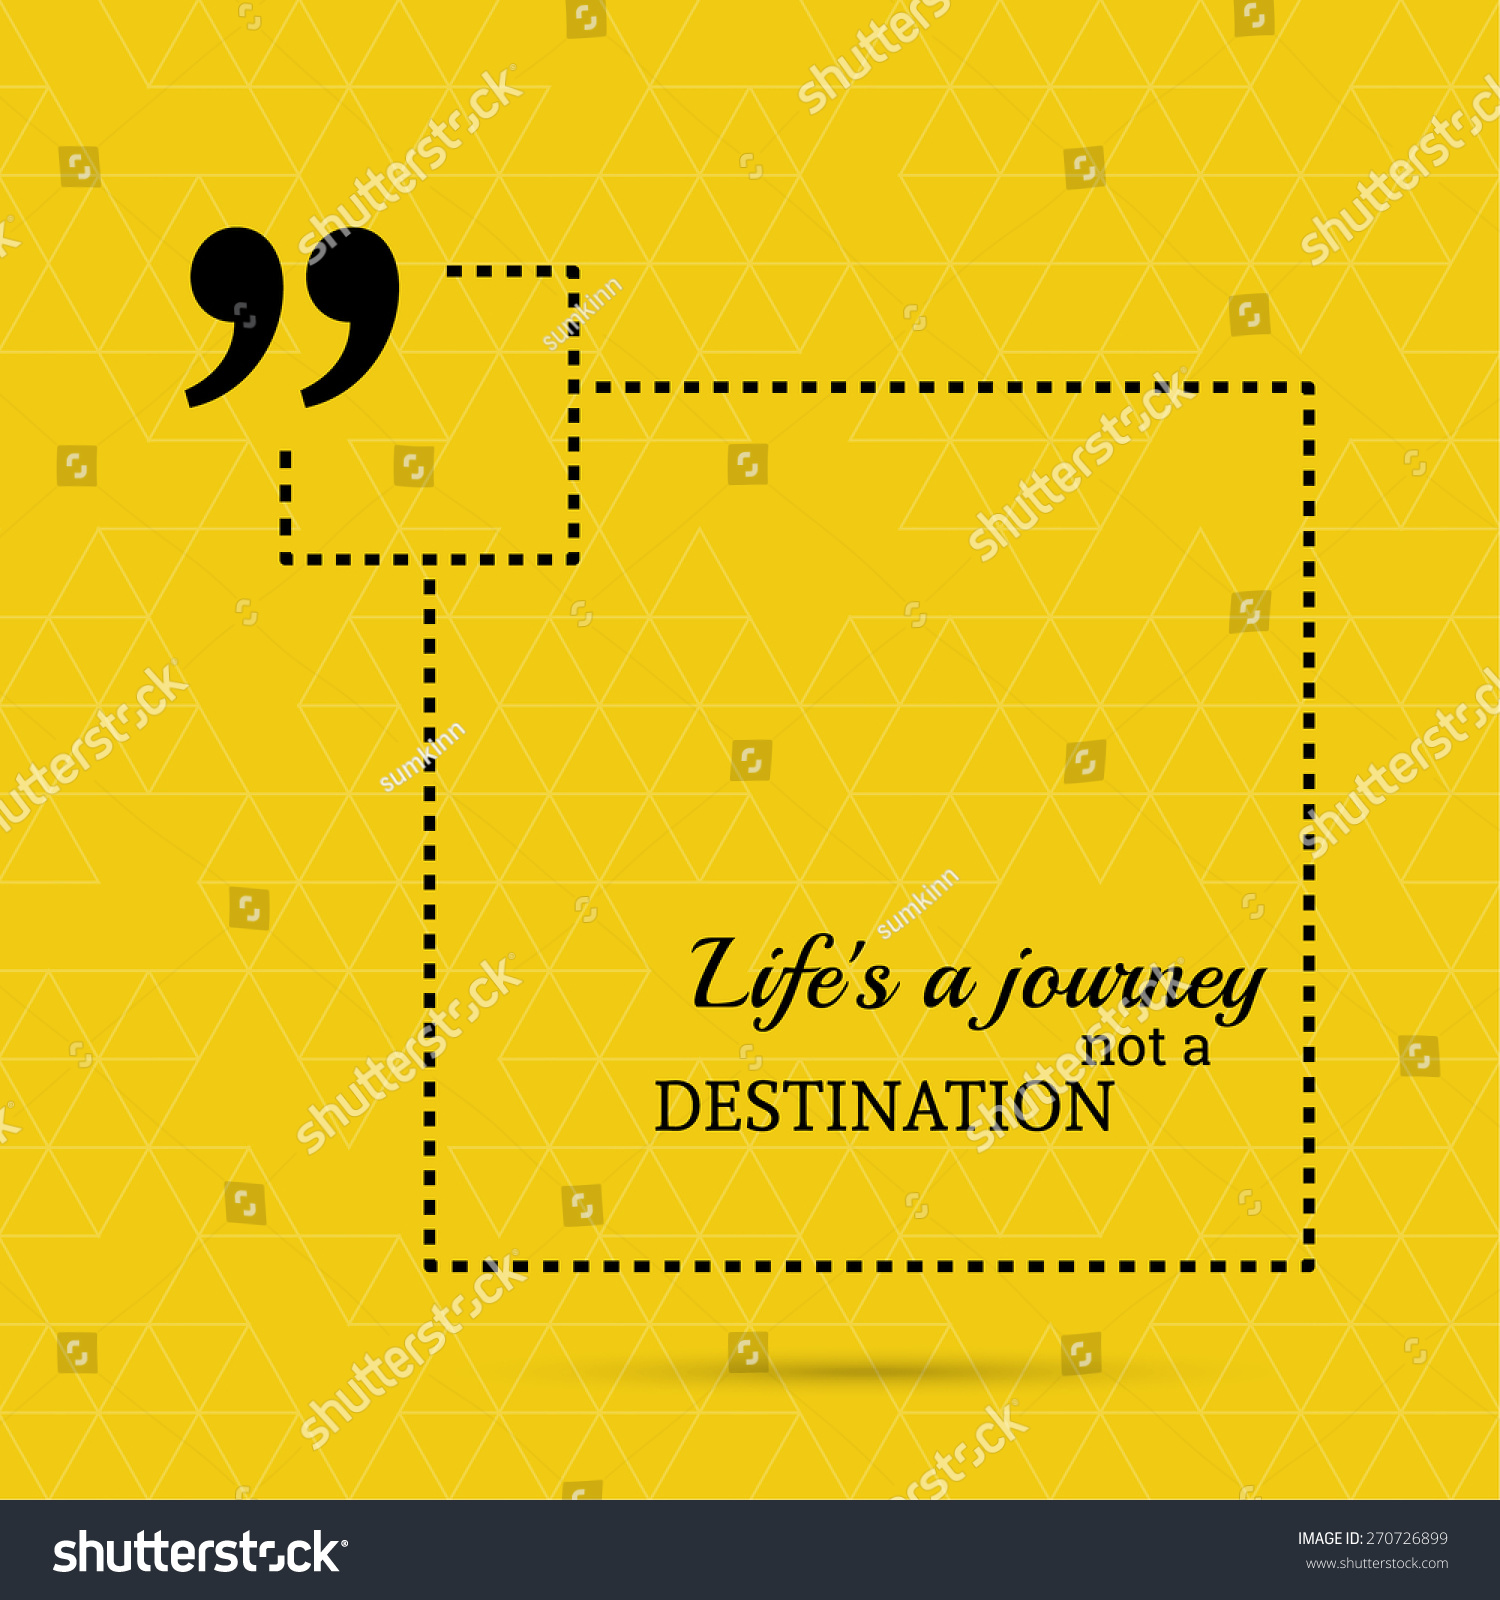 Wise Sayings And Quotes About Life Custom Inspirational Quote Life Journey Not Destination Stock Vector